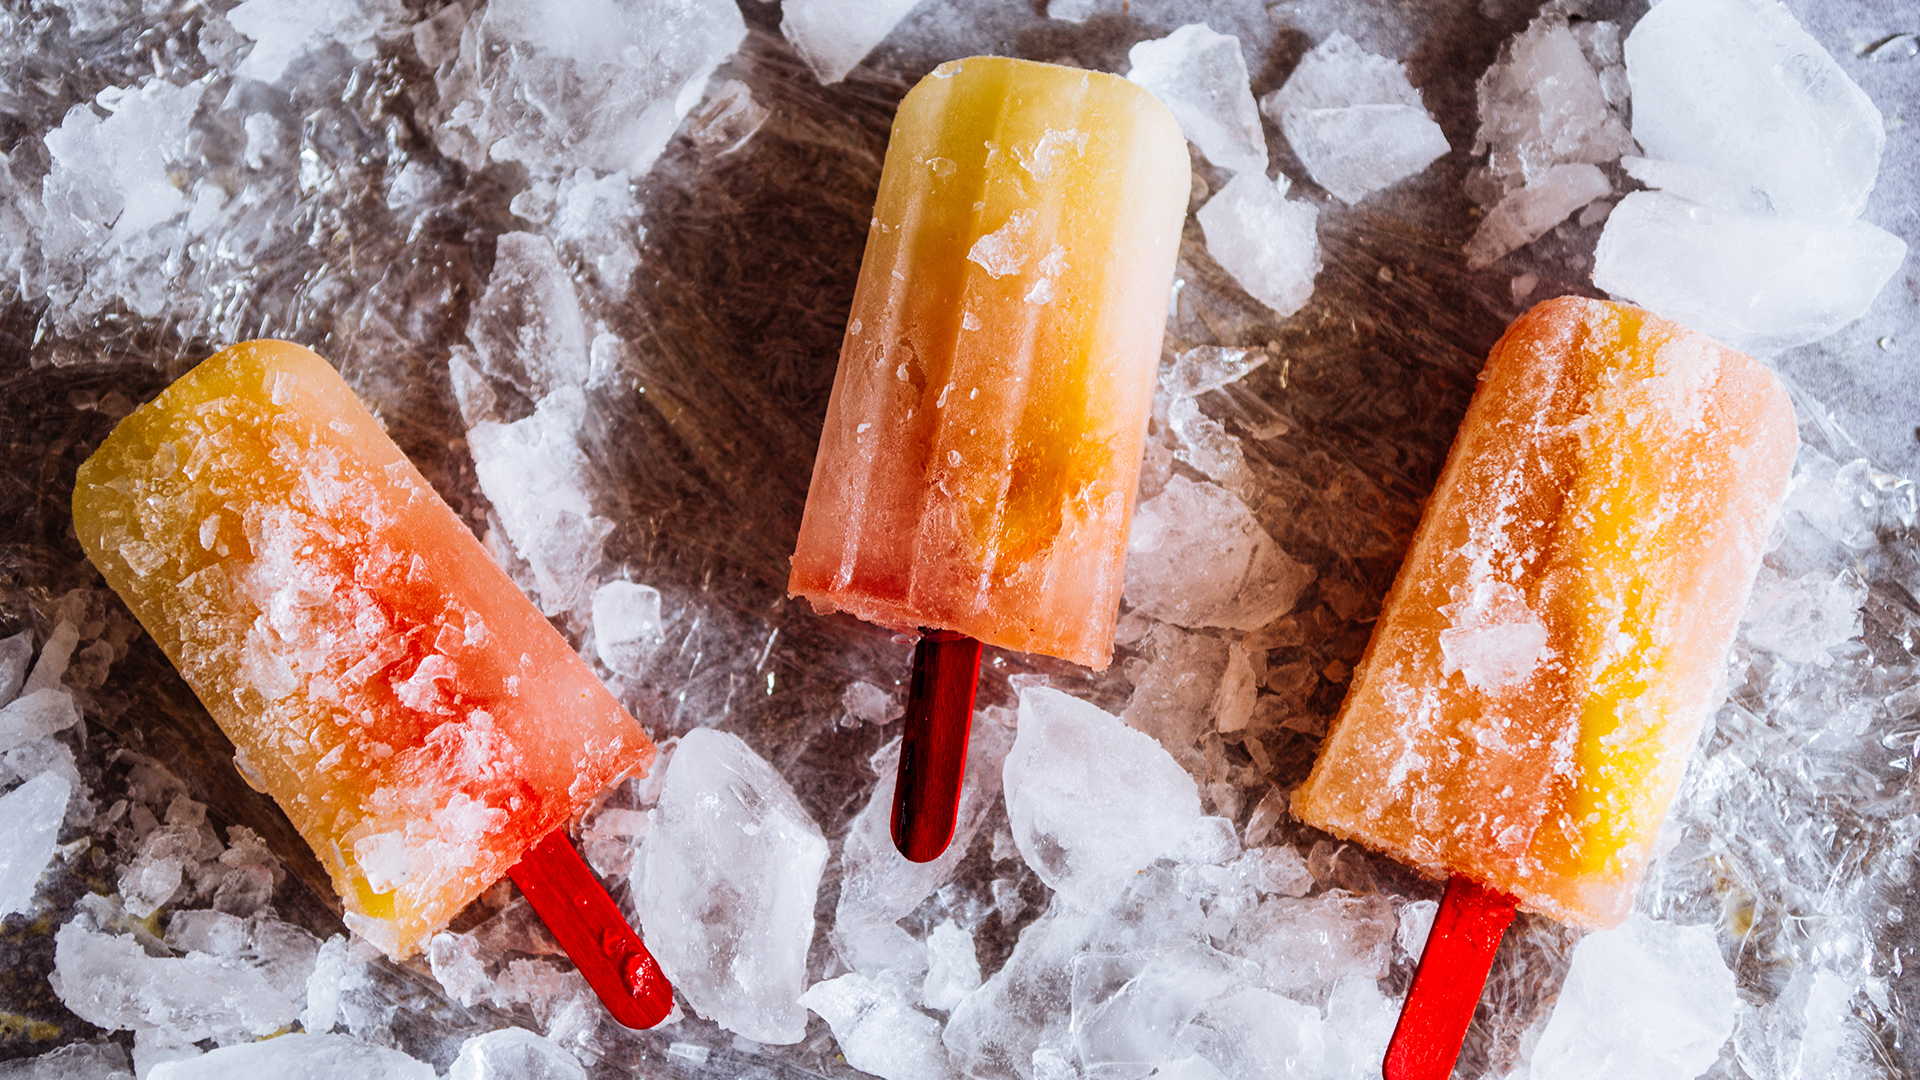 Popsicle (invented by an 11-year-old)